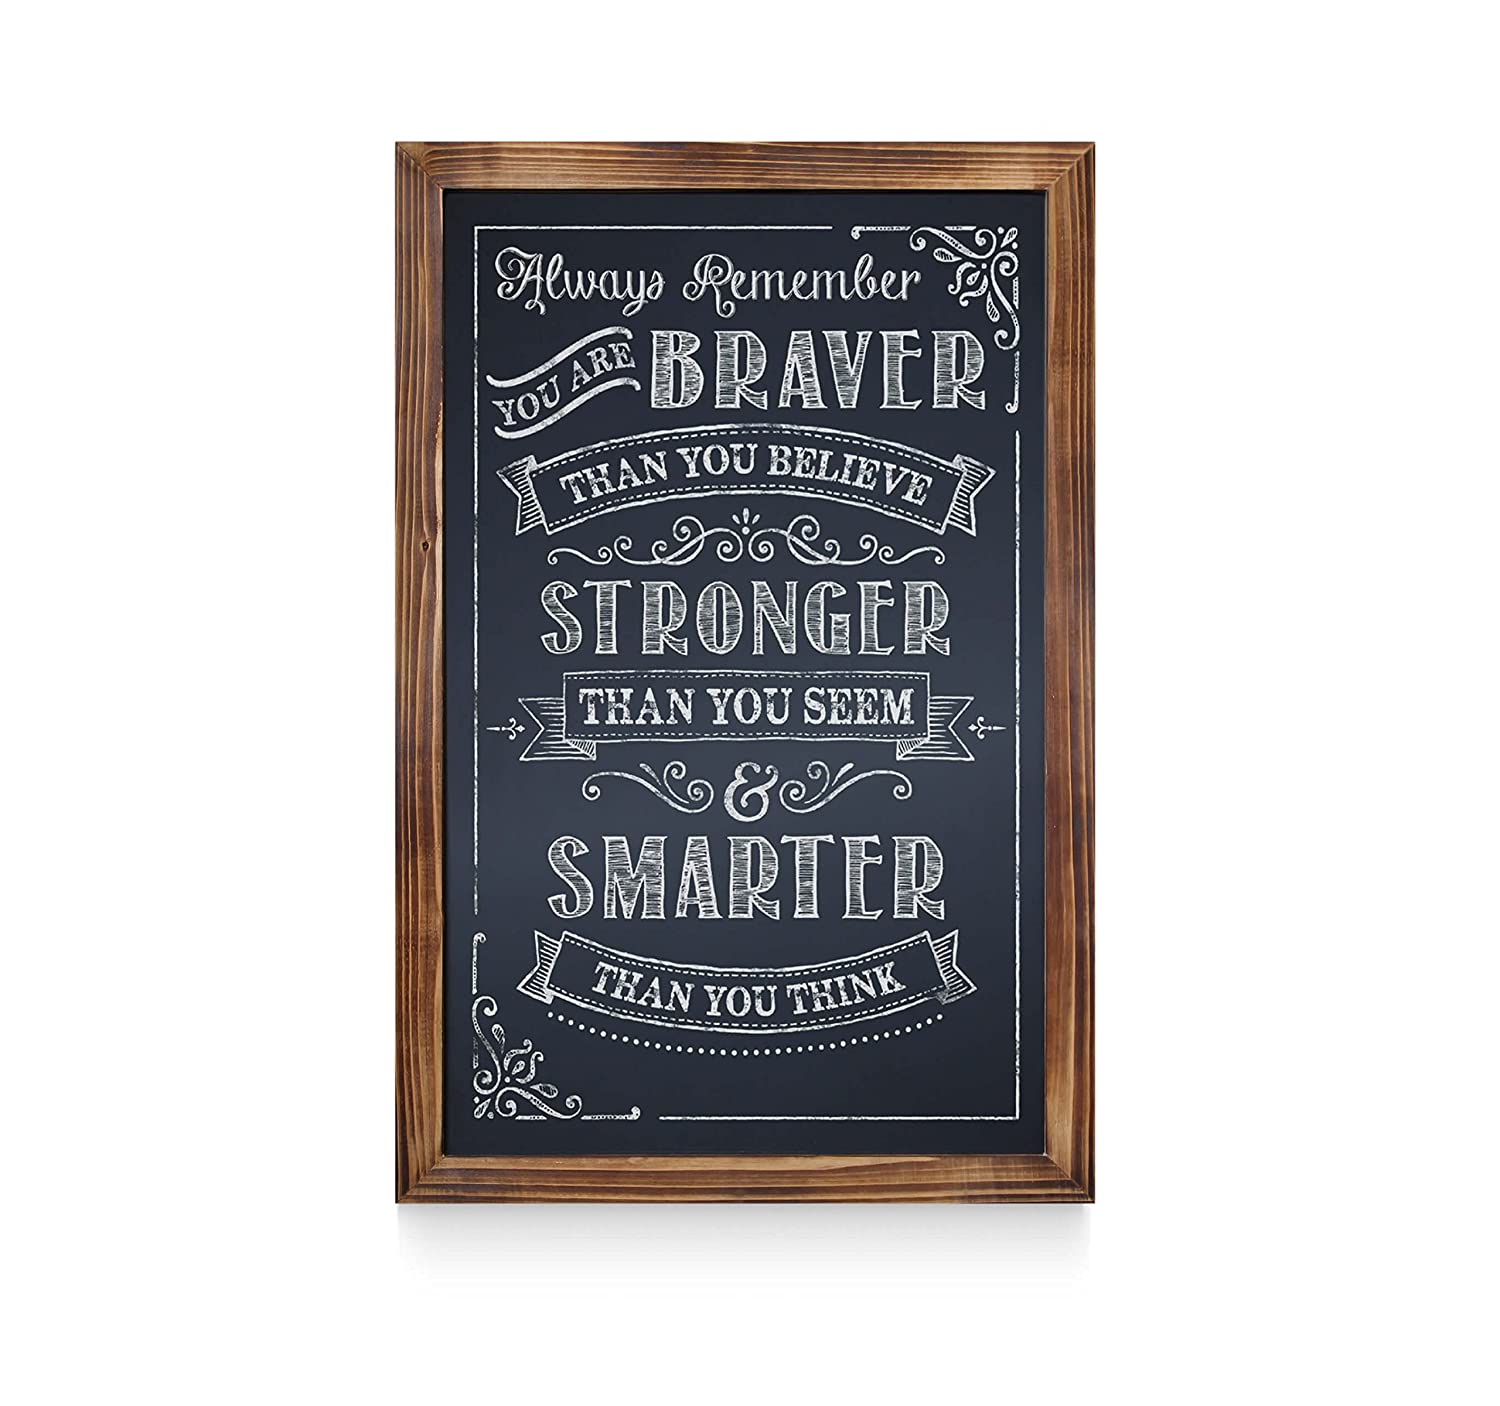 Extra Large Size 20 x 30 Extra Large Size 20 x 30 20 x 30 /… Restaurant Menus and More Weddings HBCY Creations Rustic Torched Wood Magnetic Wall Chalkboard Framed Decorative Chalkboard Great for Kitchen Decor